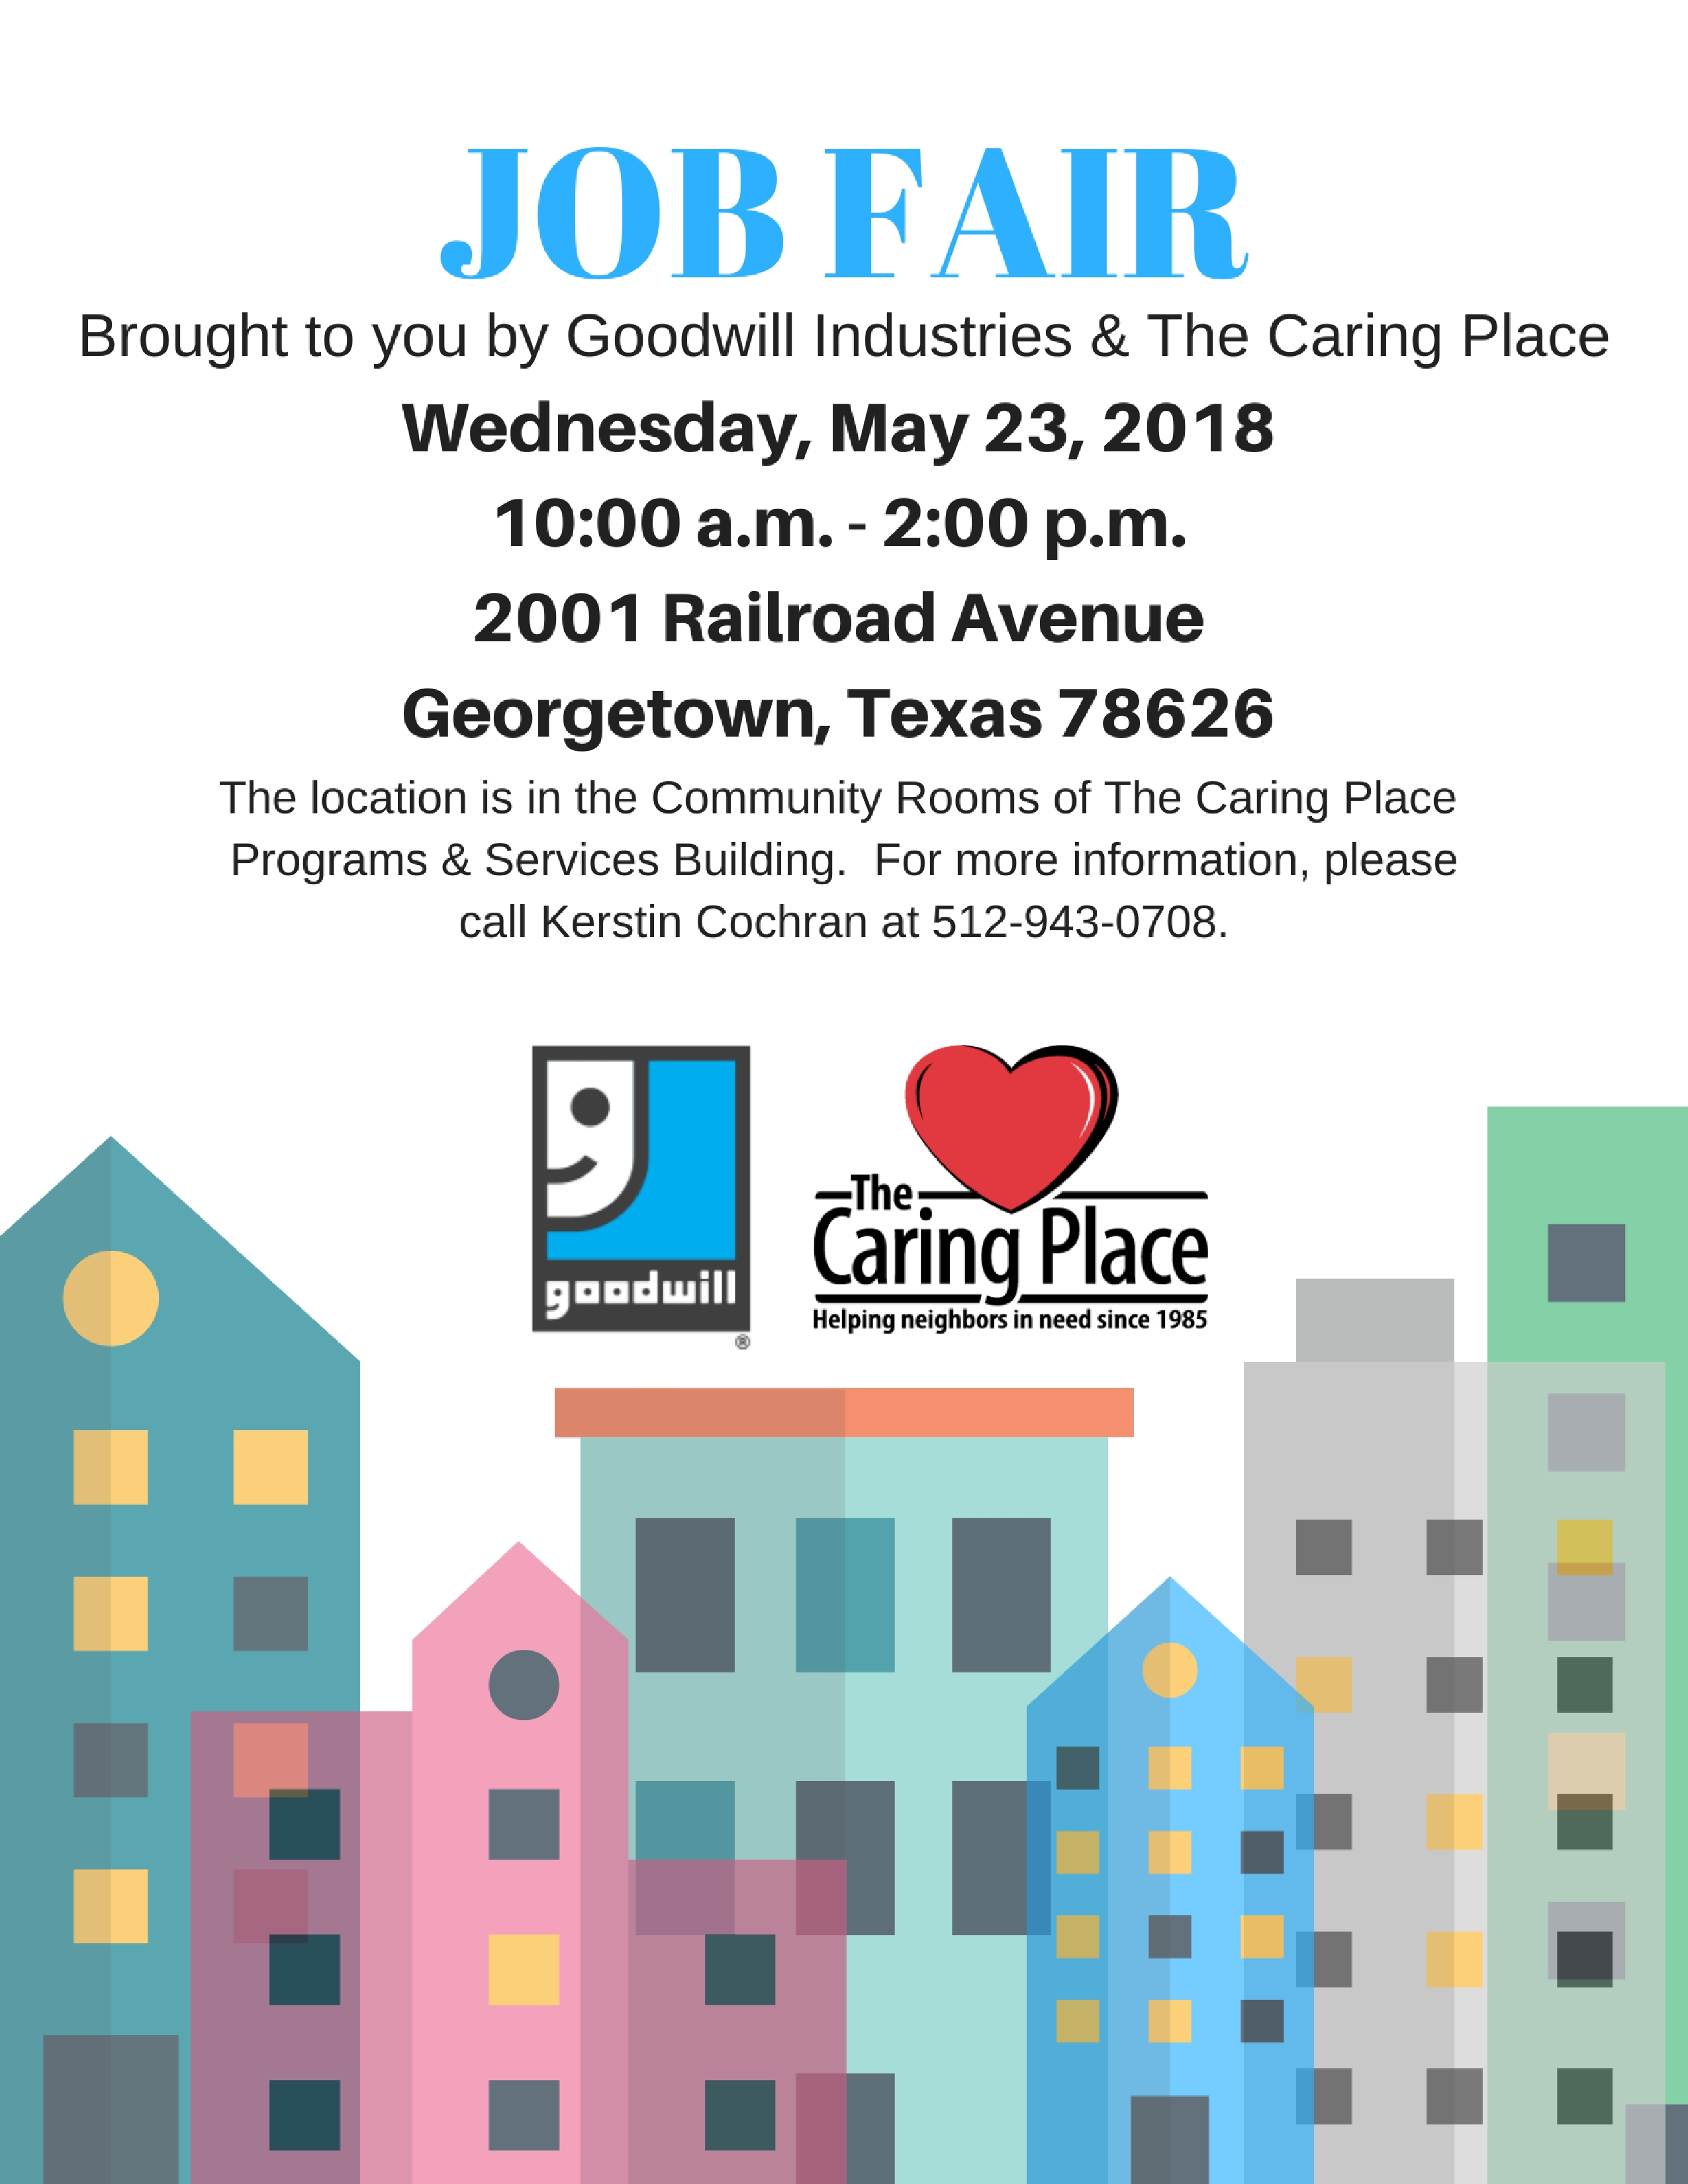 The Caring Place and Goodwill Partner on Upcoming Job Fair